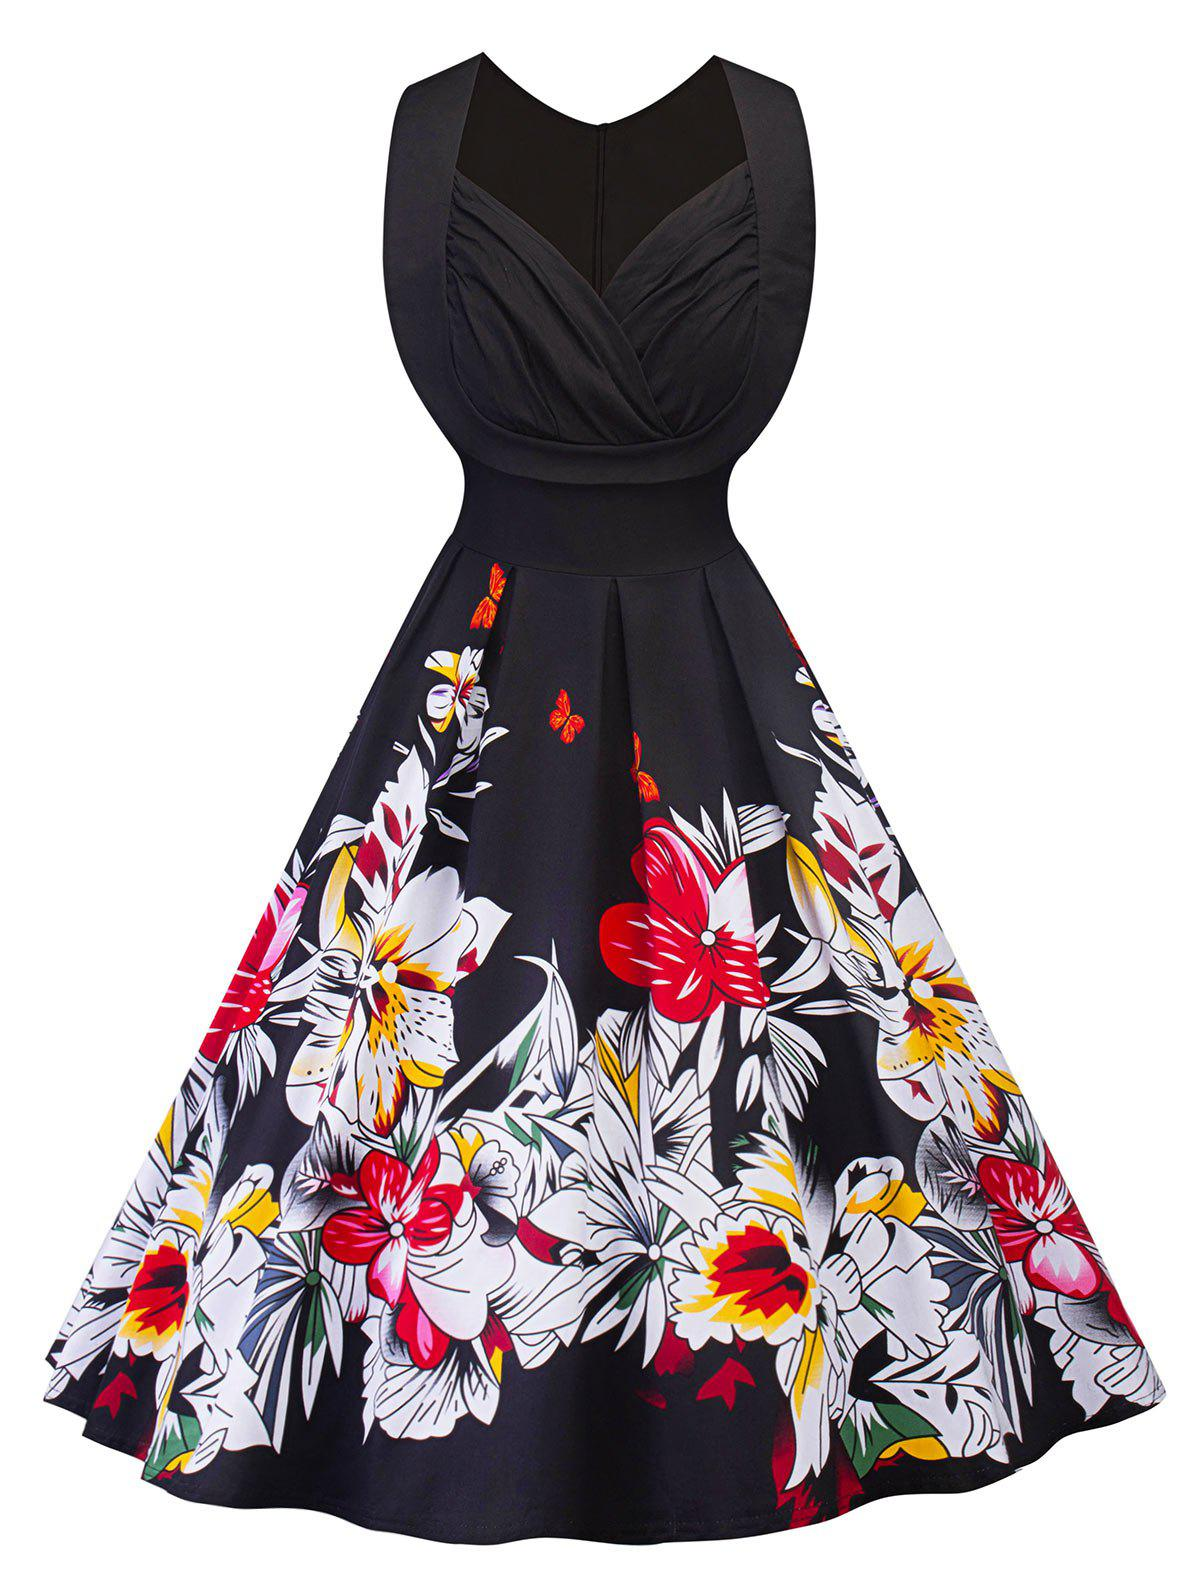 Vintage Ruched Floral Print Fit and Flare Dress sleeveless floral print fit and flare dress